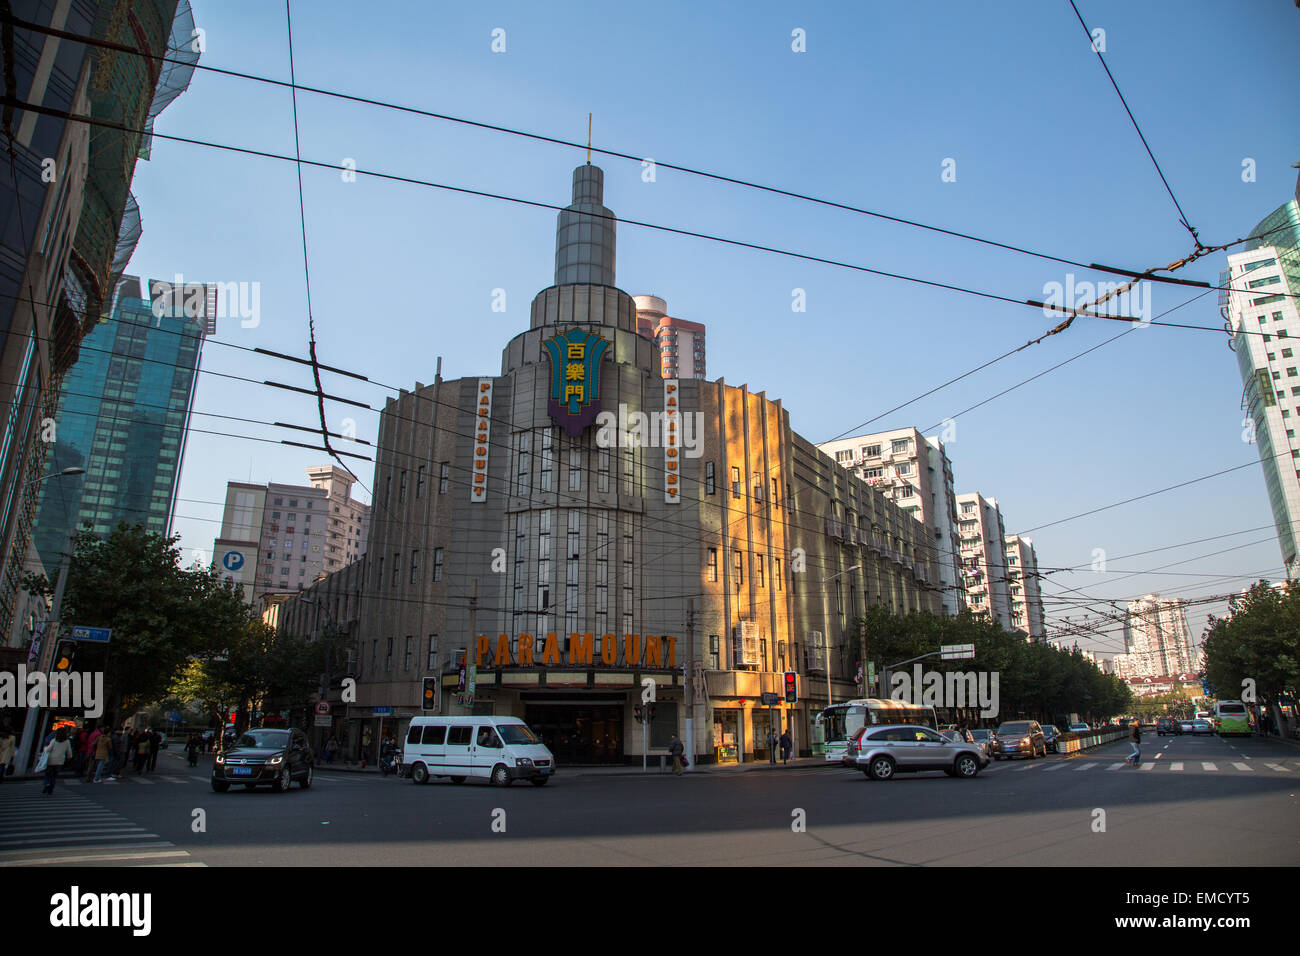 Paramount Hall in Shanghai - Stock Image